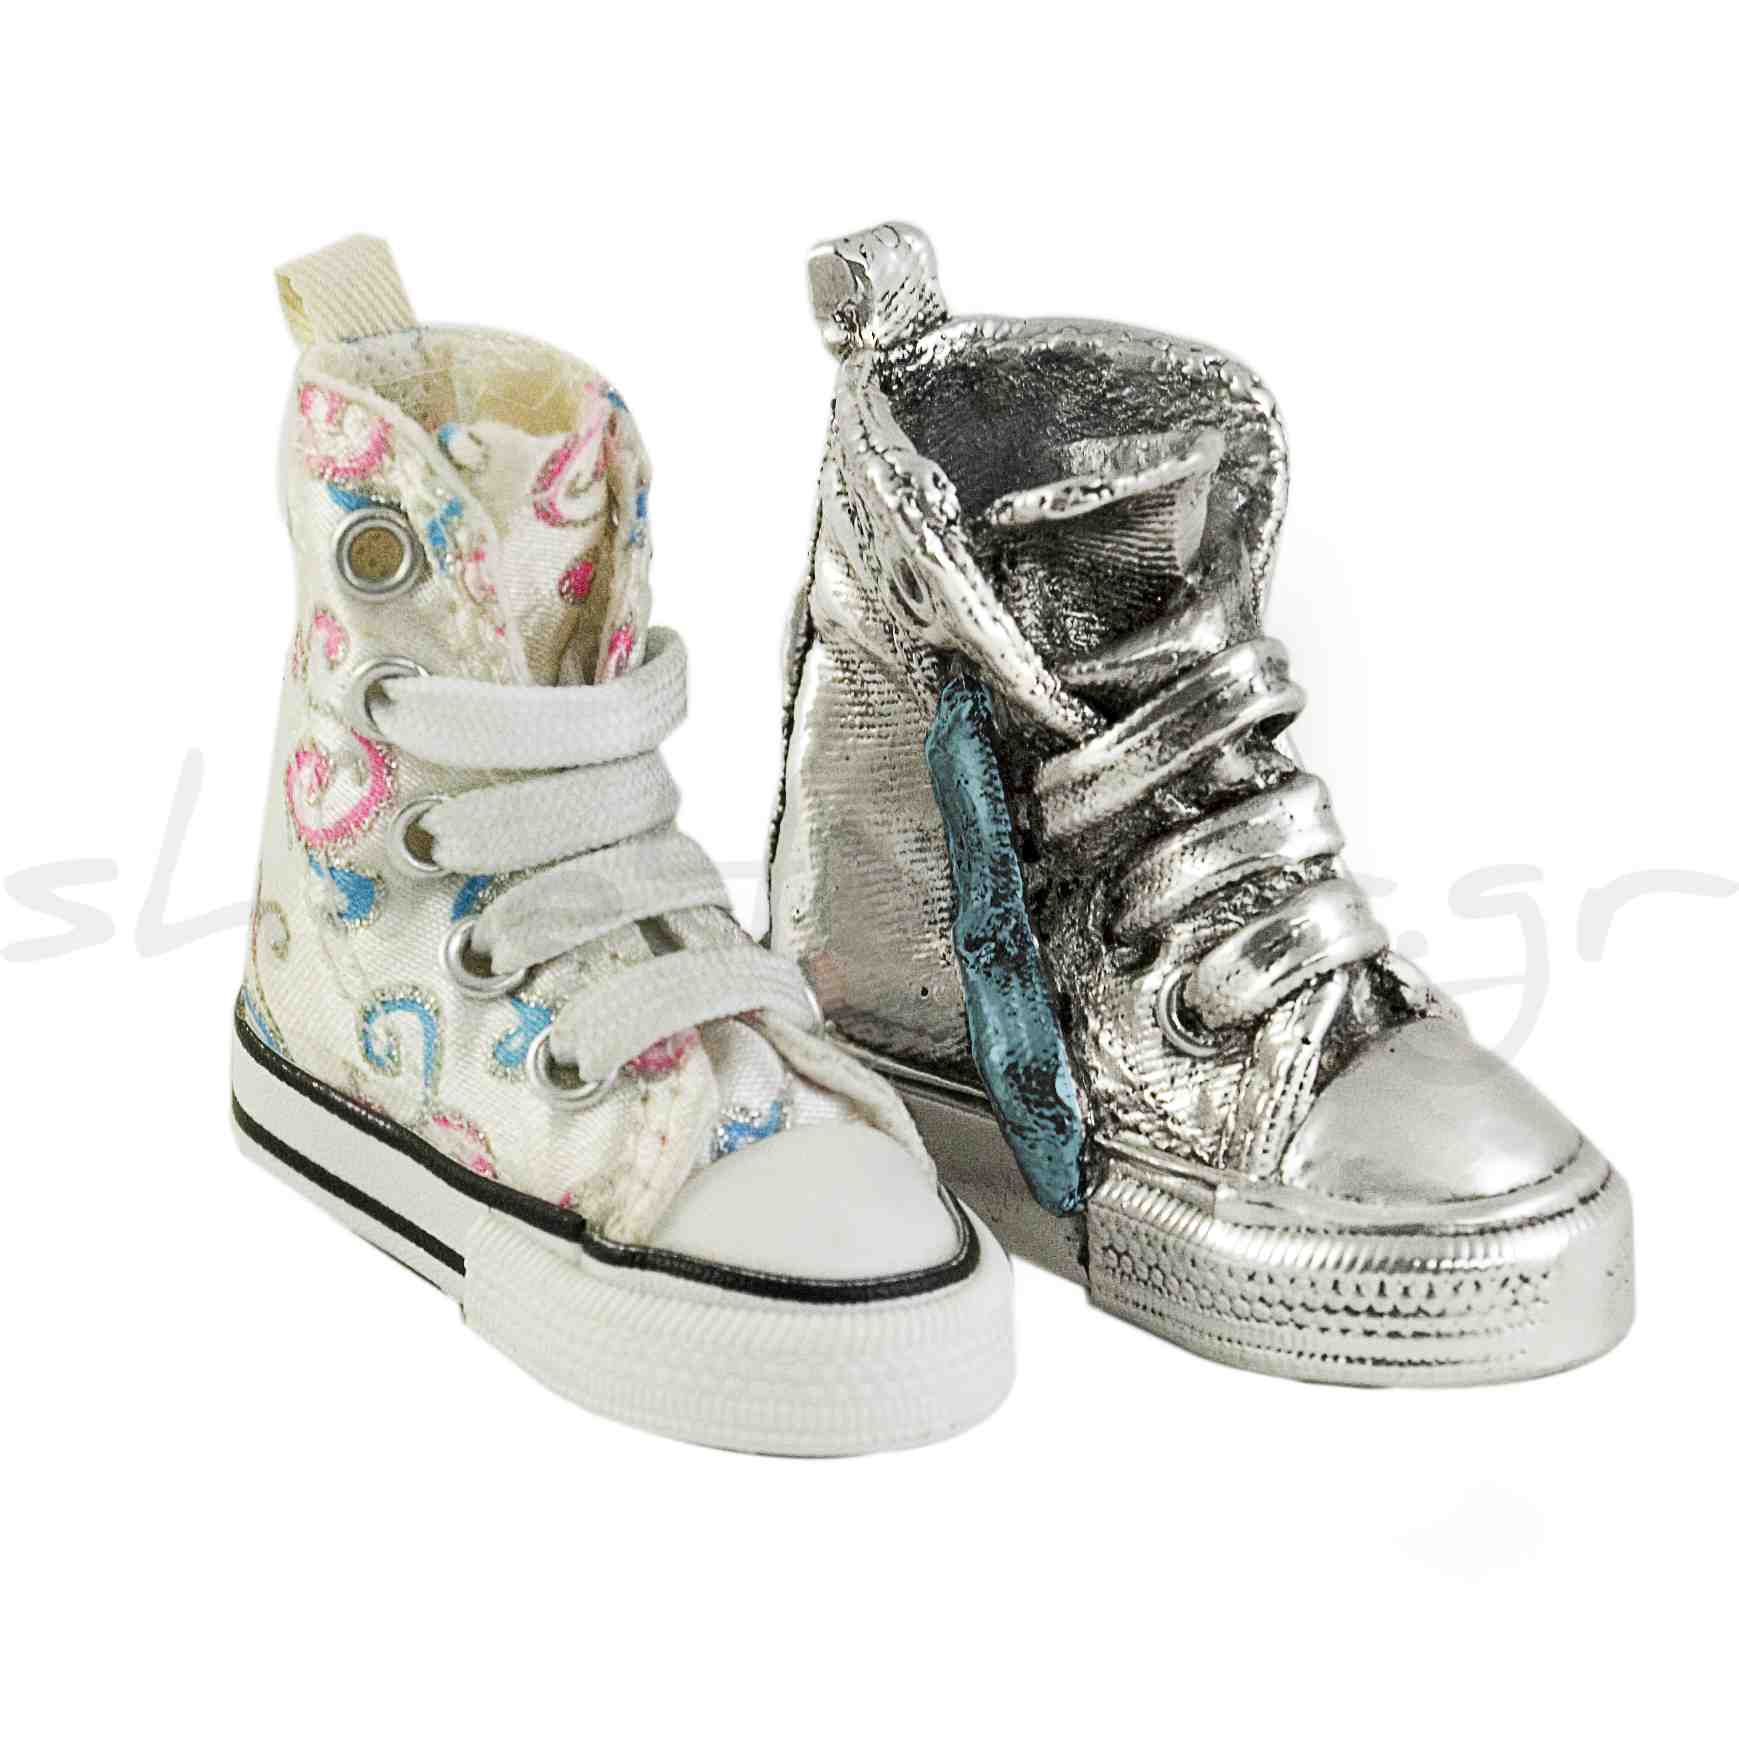 shoes with watermark